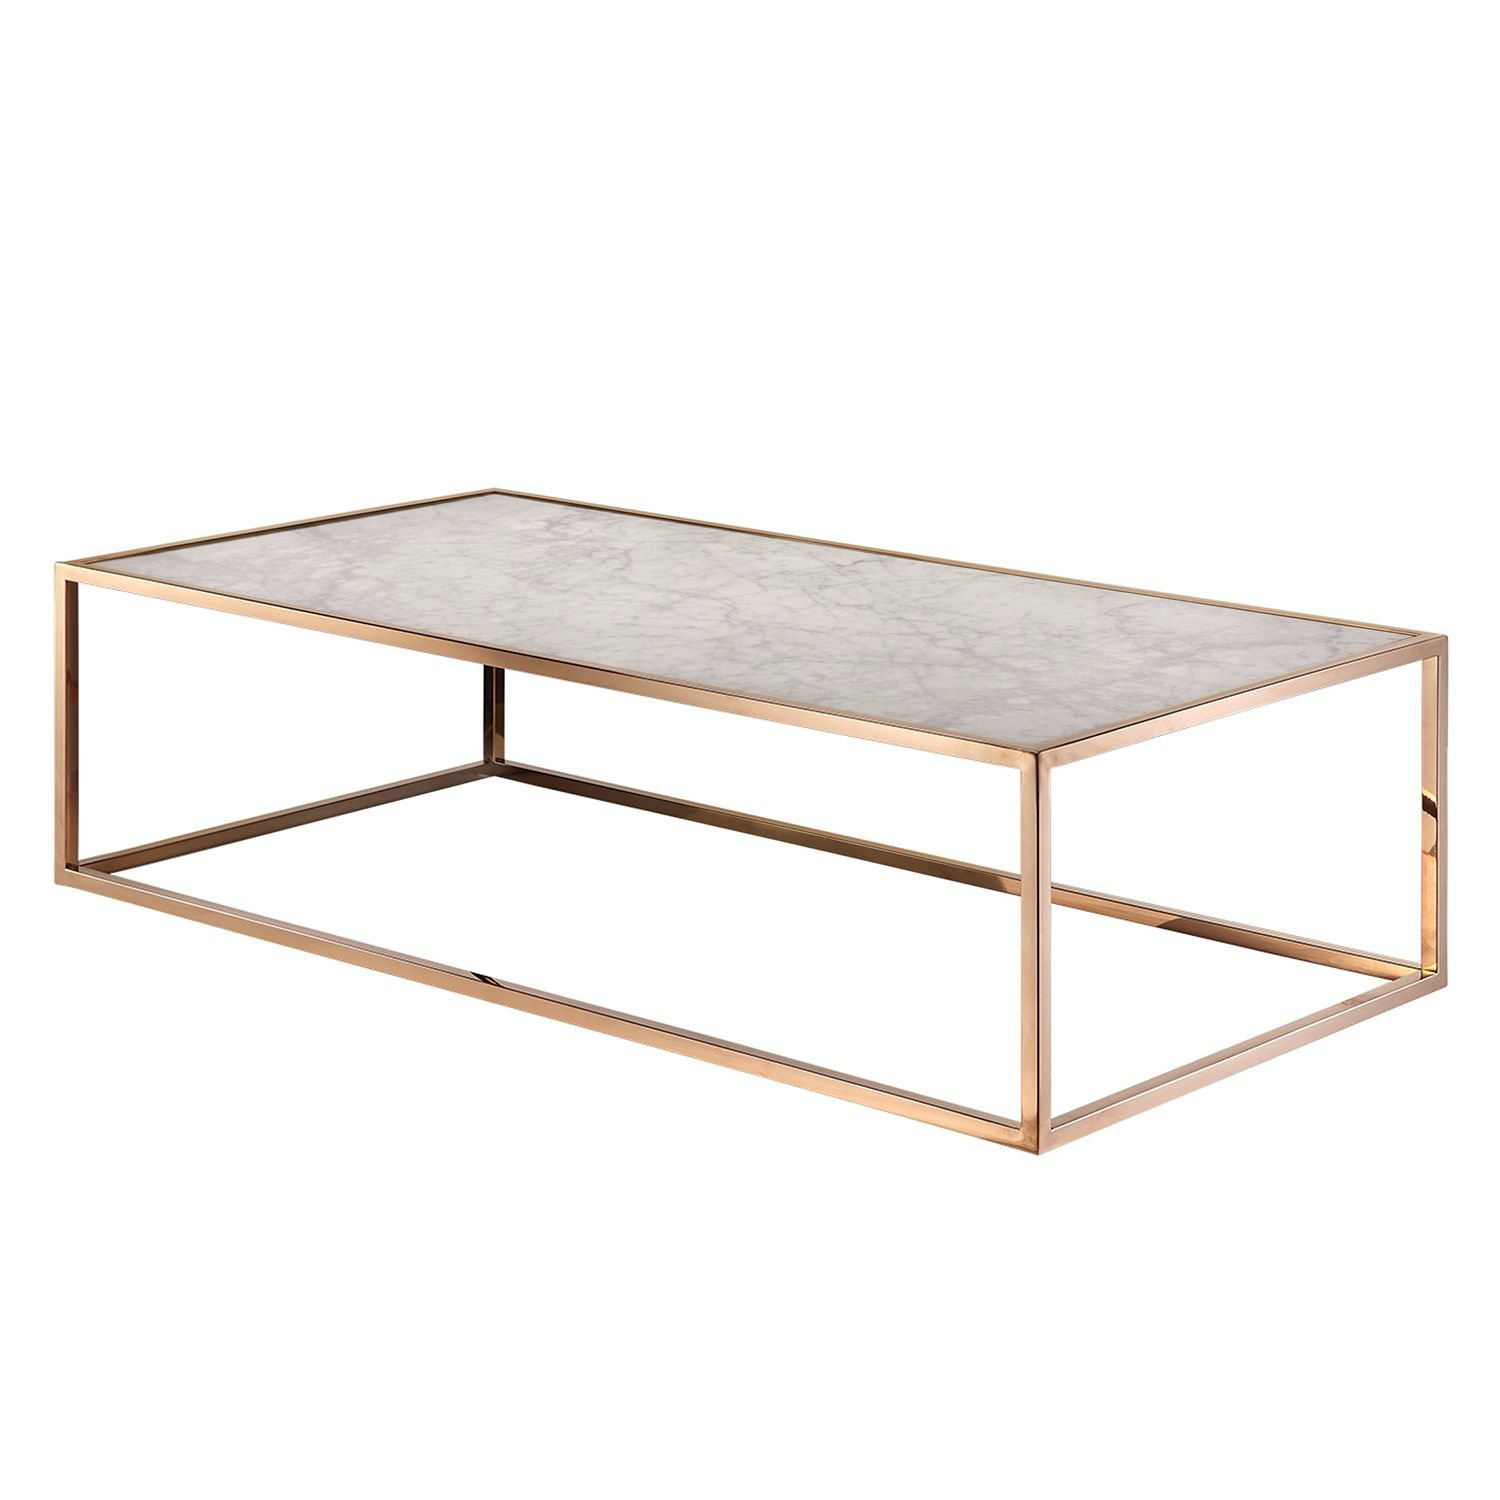 Table Basse Marbre Idees De Decoration Interieure French